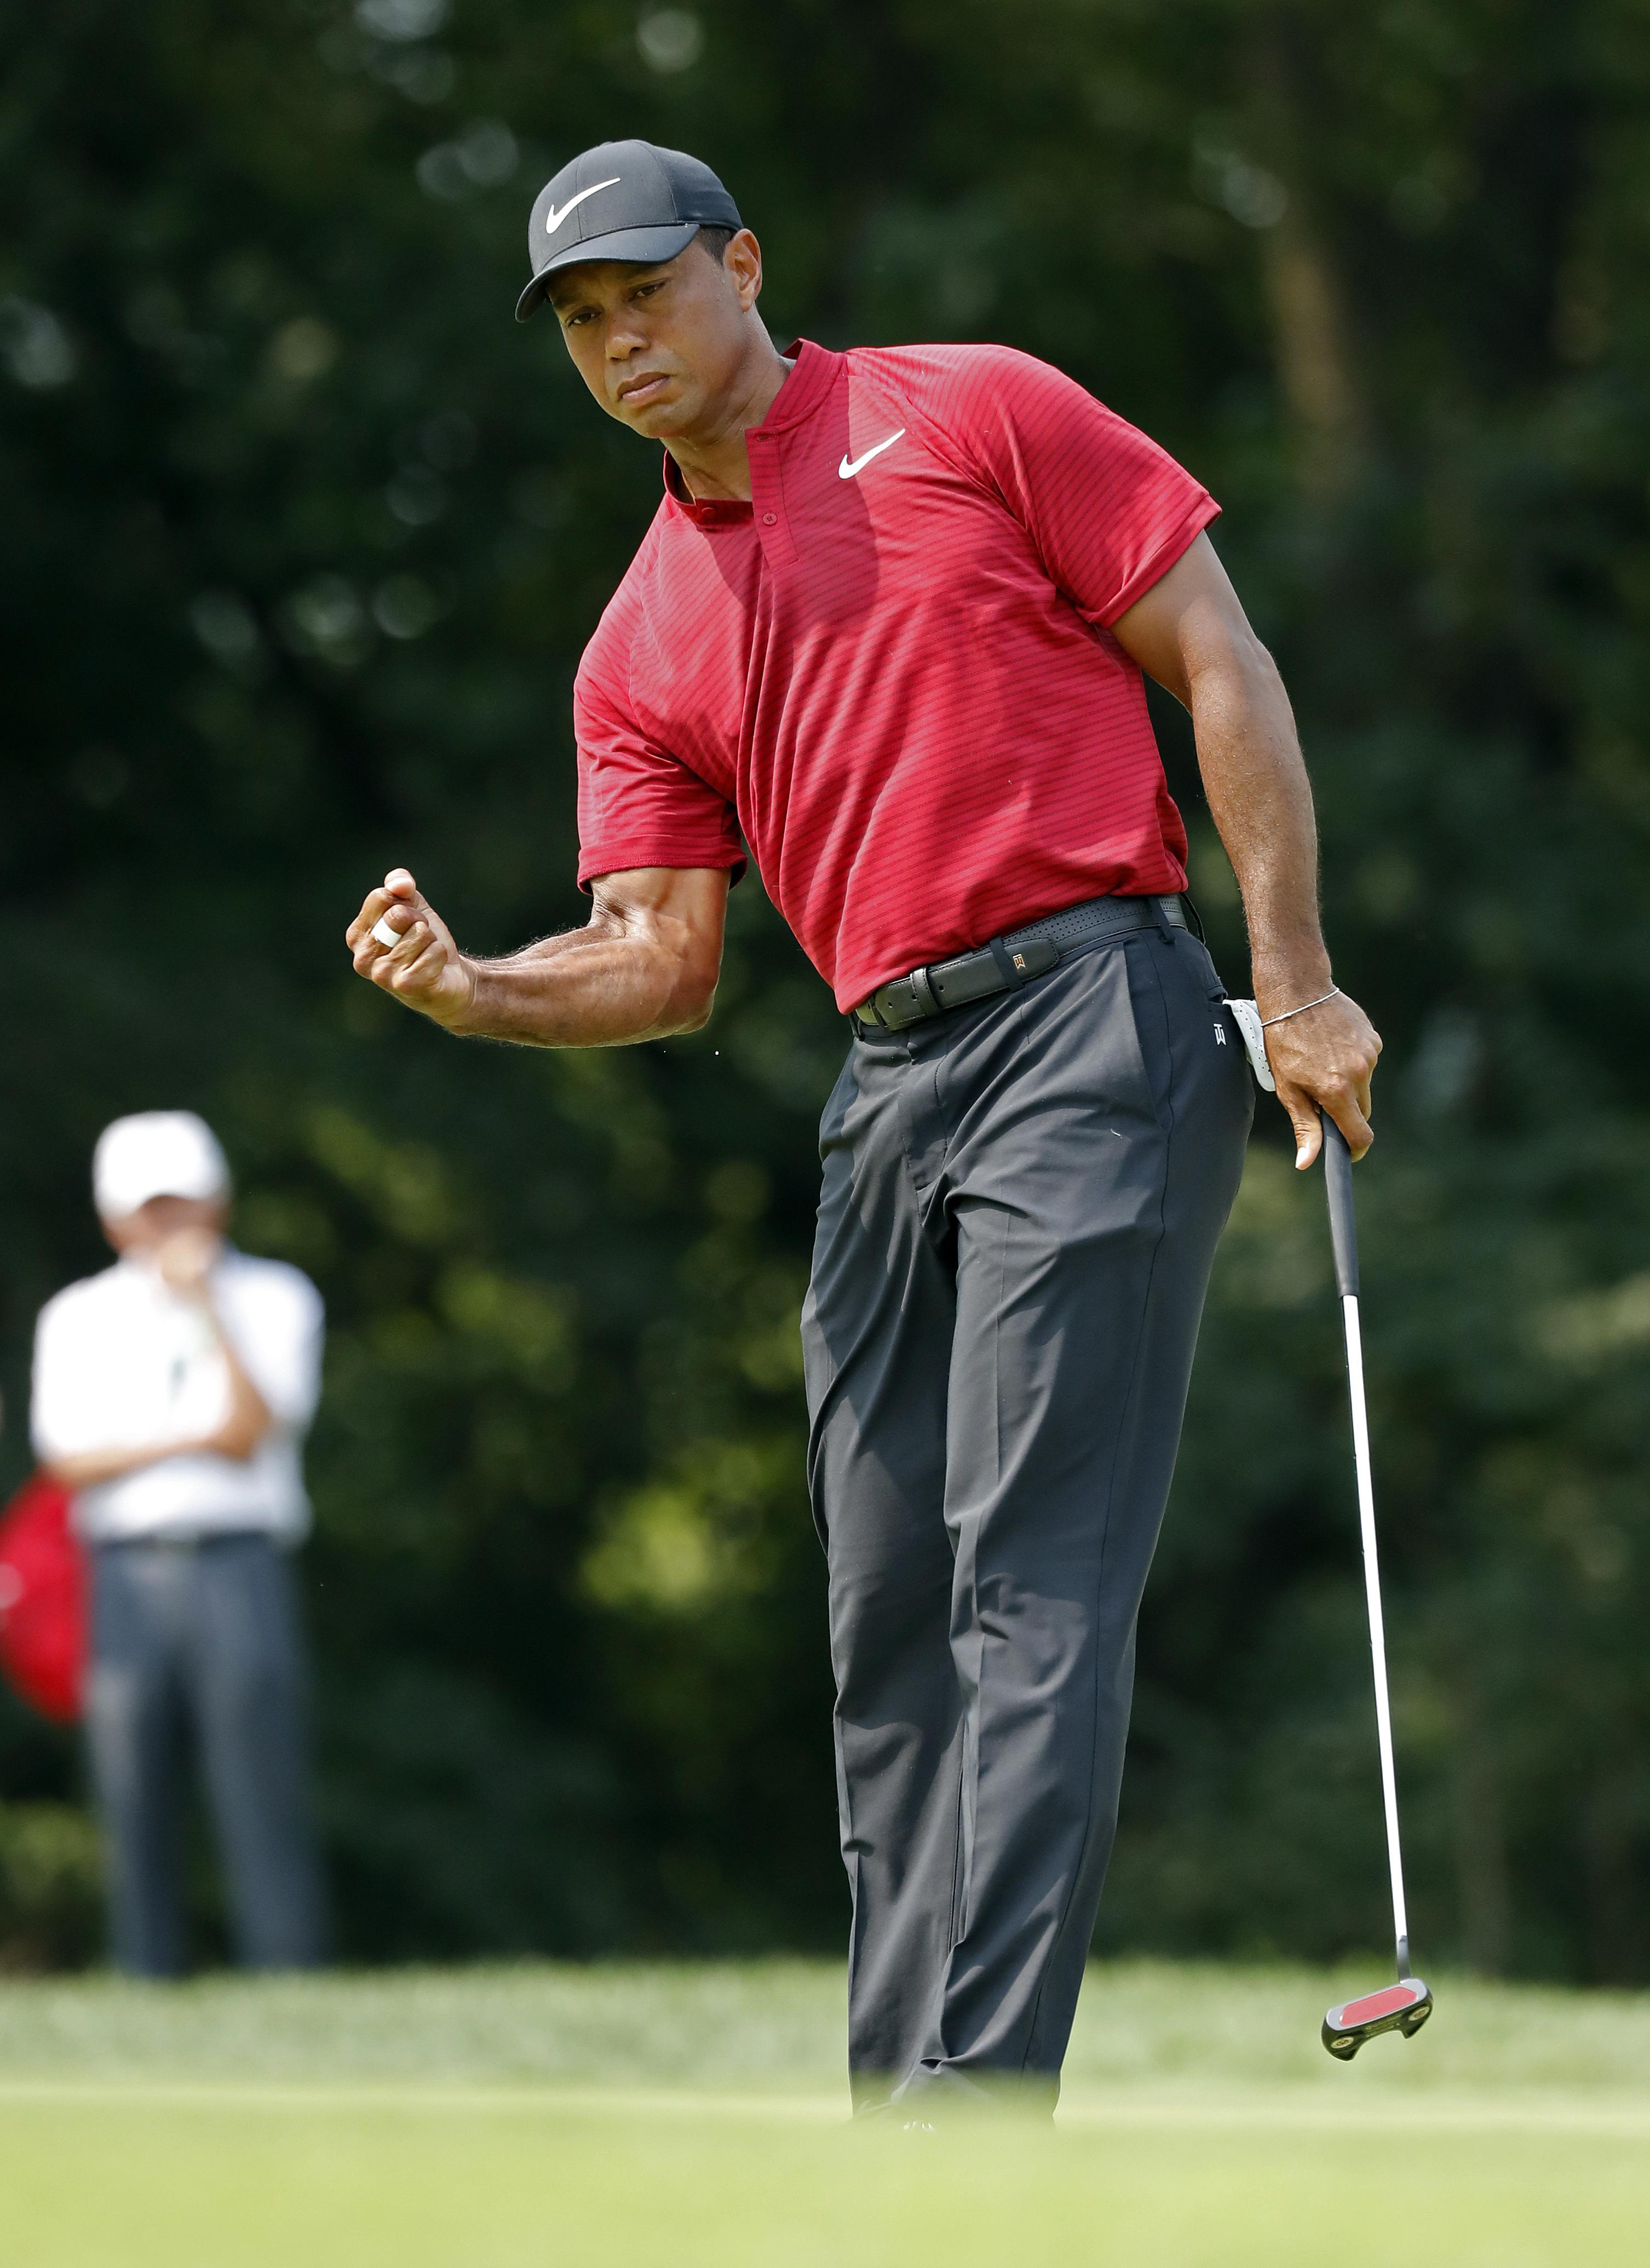 Tiger Woods electrified the air in St Louis as he made his move on the final day of the US PGA Championship